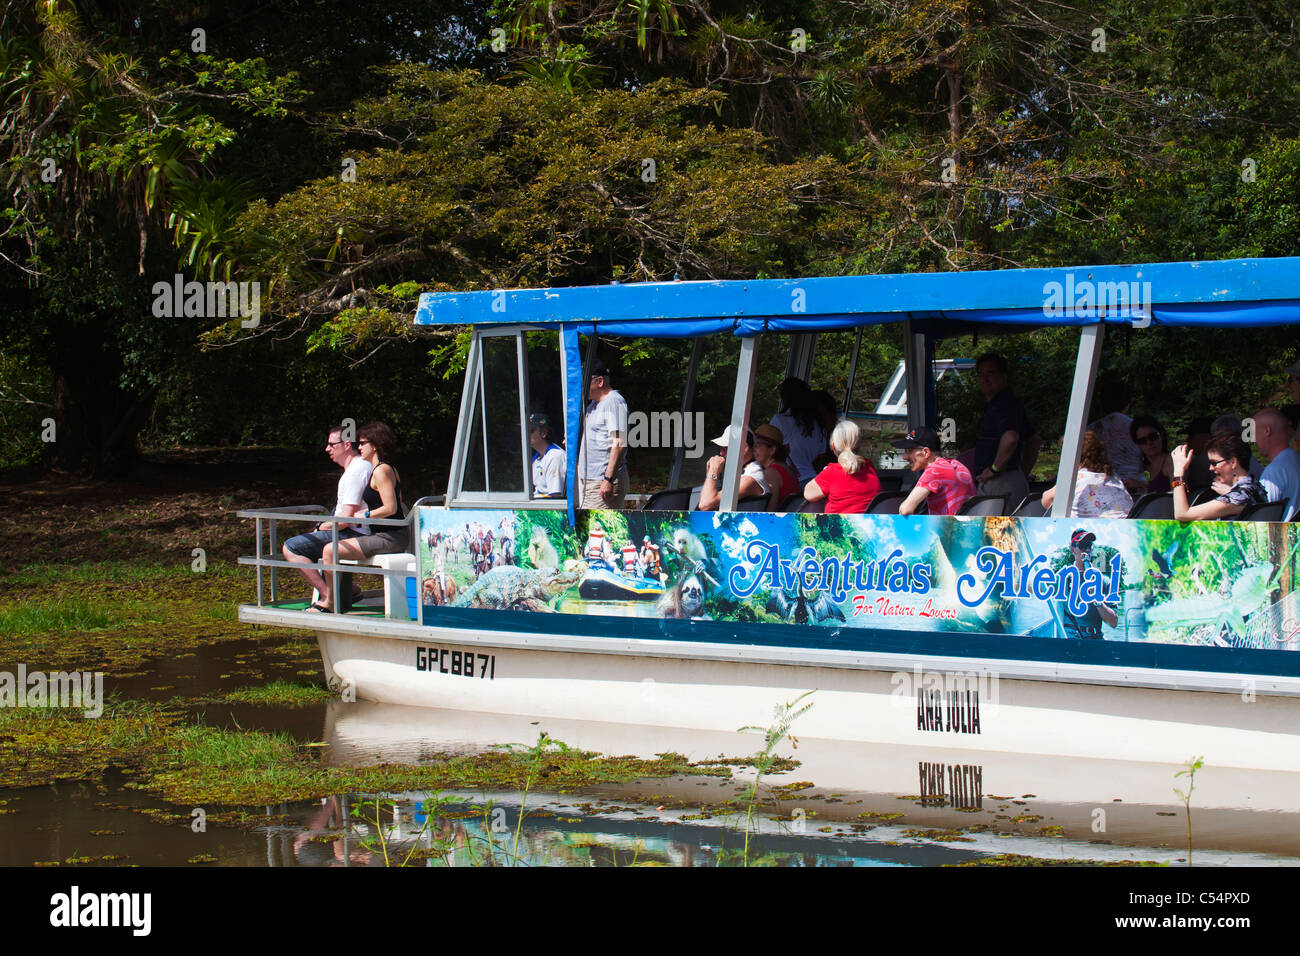 Ecotourism ecotourists 50+ on boat tour in tropical jungle and rainforest Rio Frio Los Chiles - Stock Image